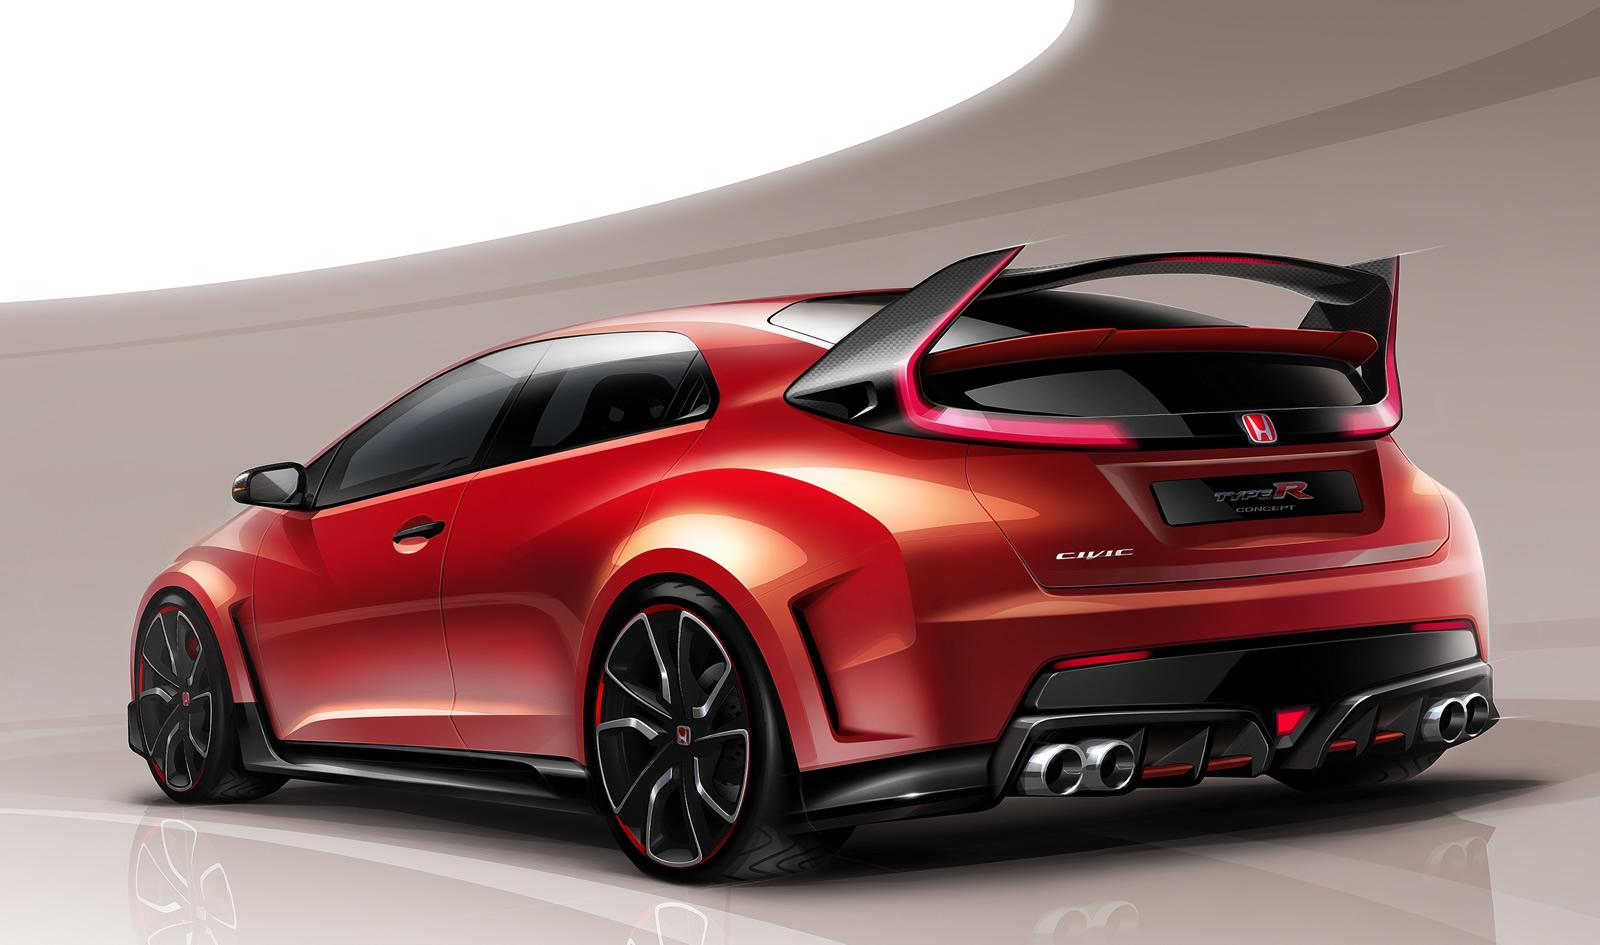 Honda Cars - News: 2015 Civic Type-R heading to Geneva